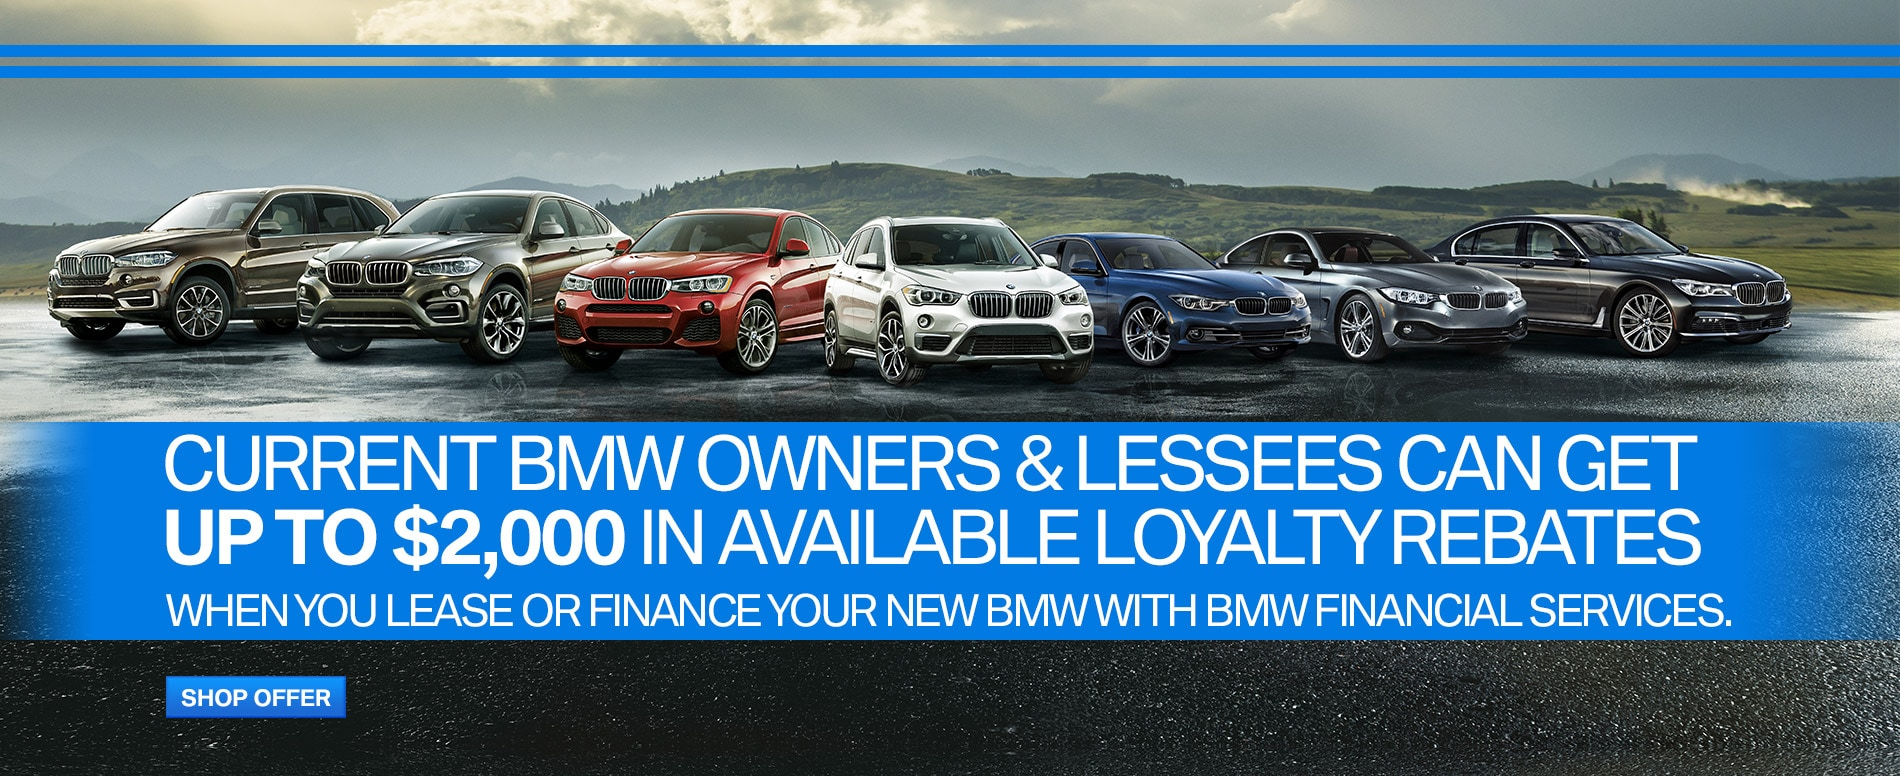 New Bmw Used Car Dealer In Kinston Nc Serving Greenville Engine Coolant Mini Previous Next